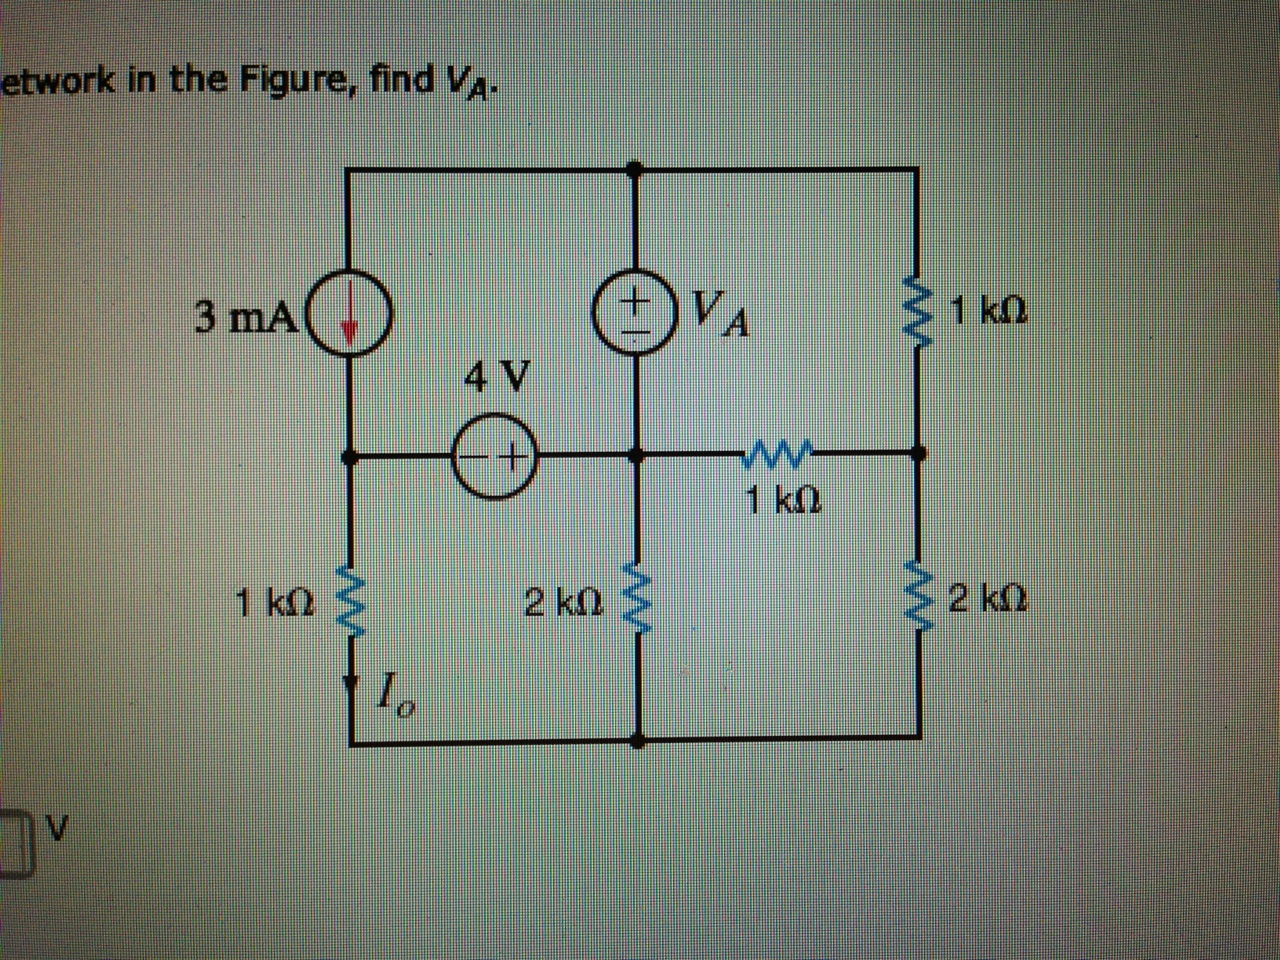 Network in the figure, find VA.